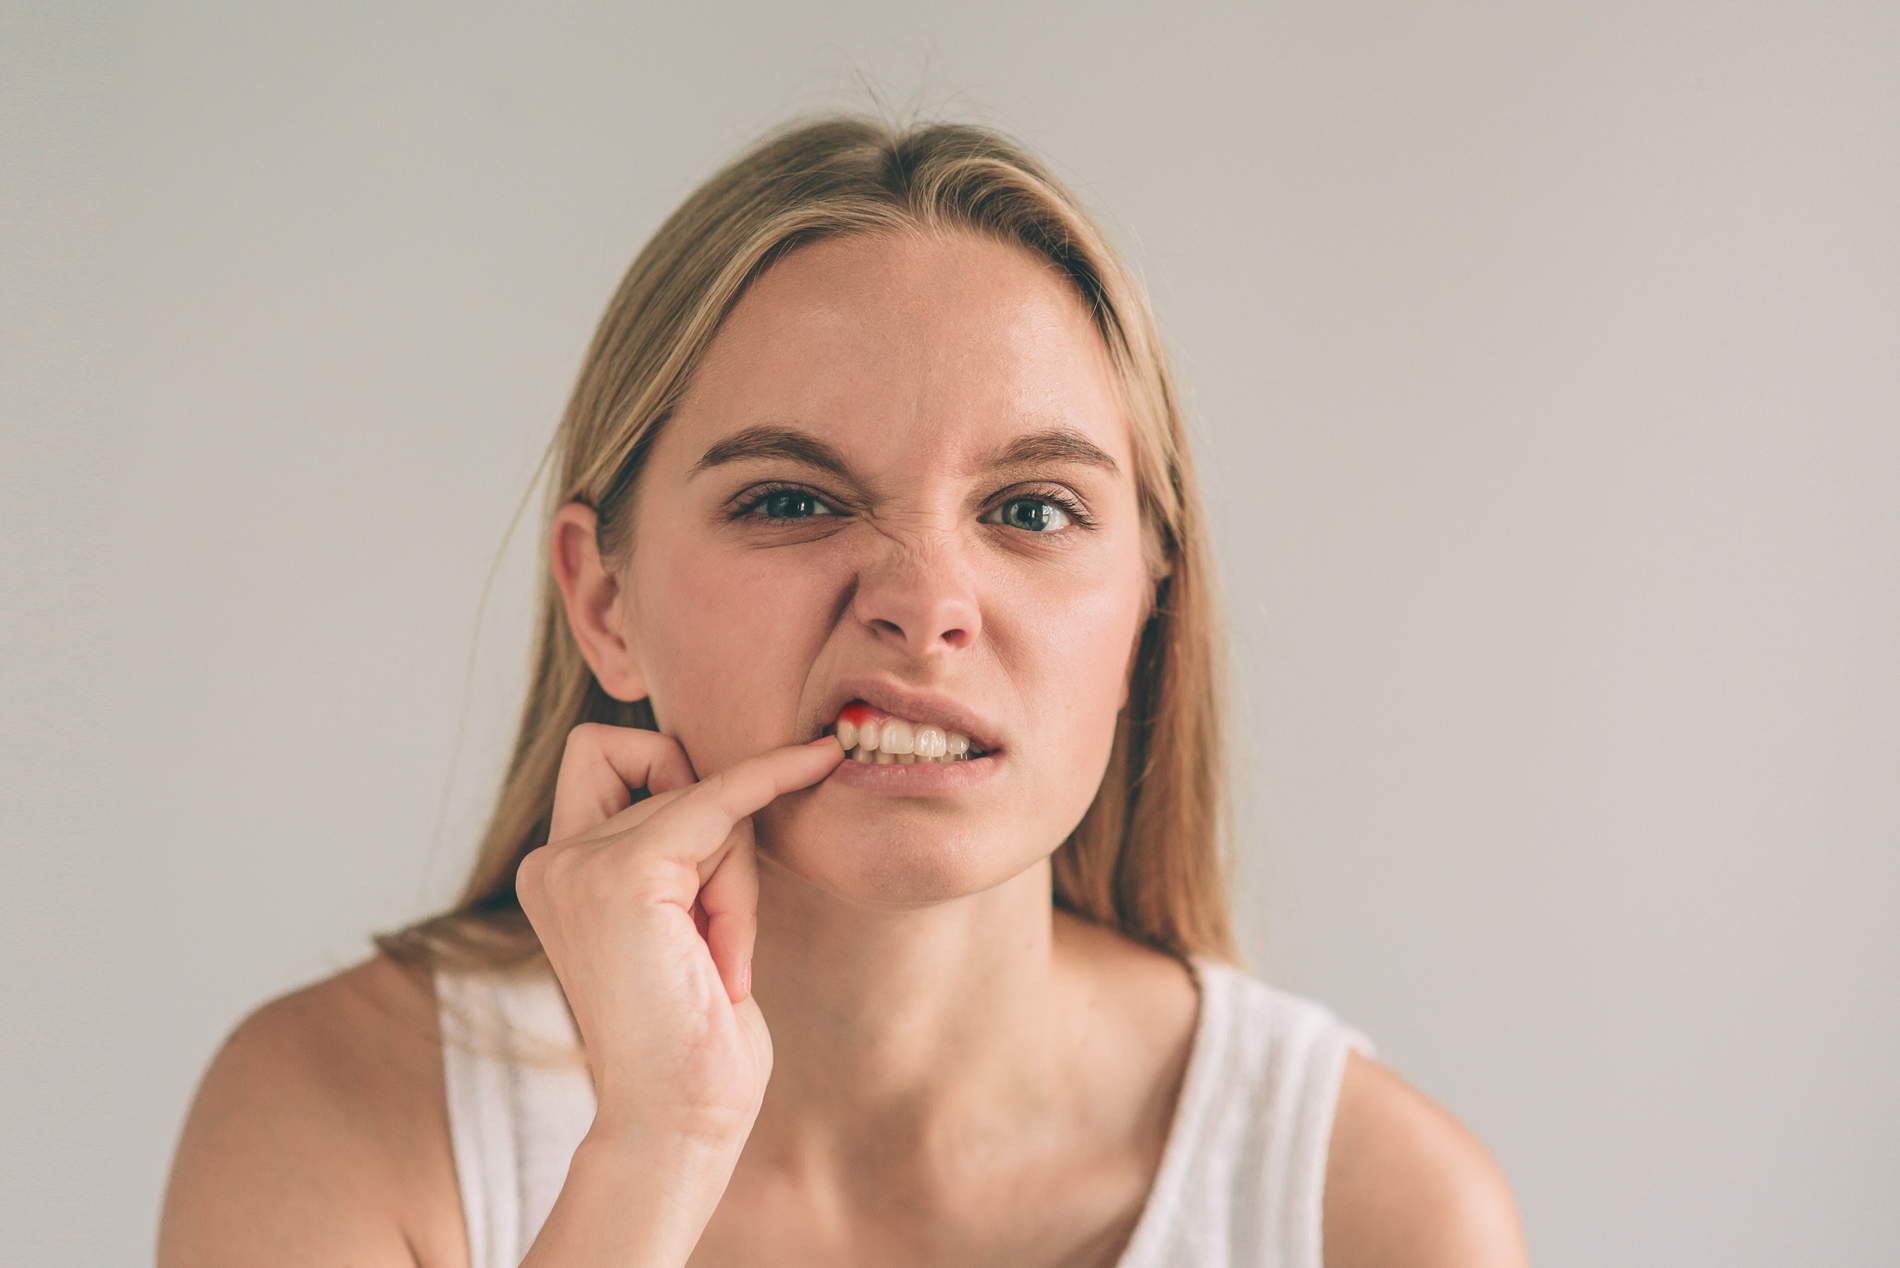 Gum Infections can lead to more serious problems